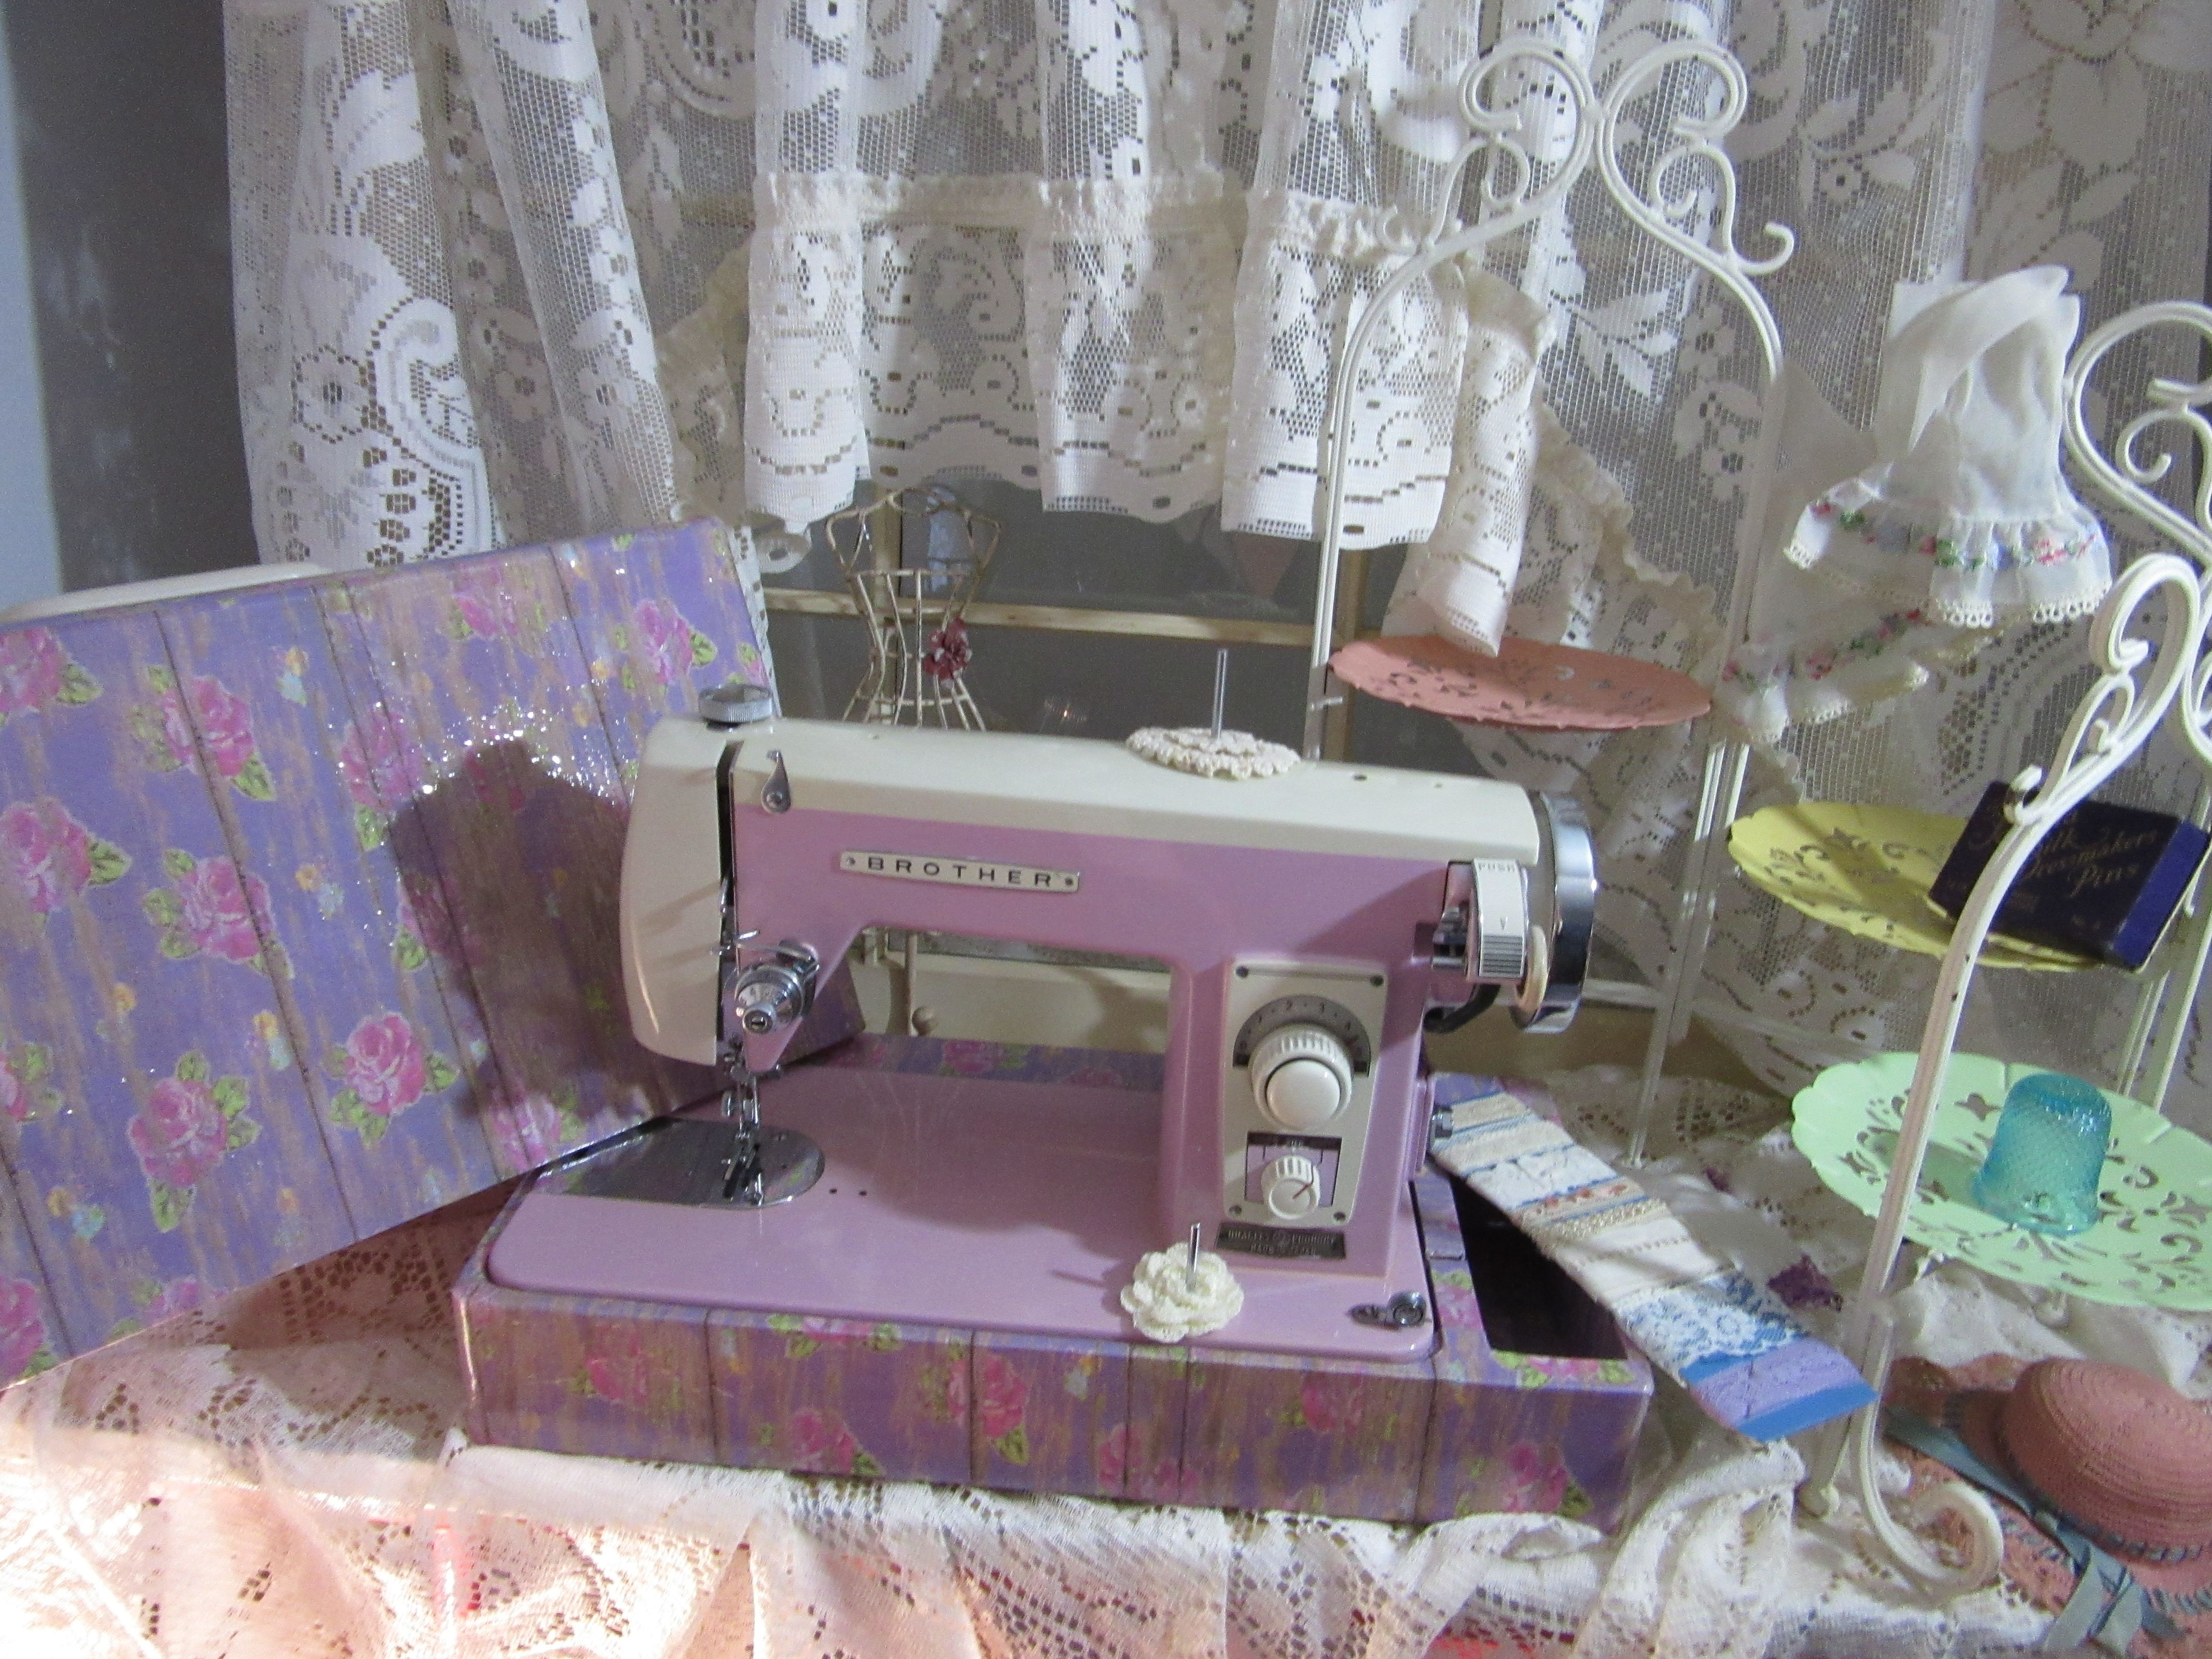 Scrapbook paper case - Orchid Brother Super Streamliner Model 220 Orchid Ivory Made In Japan I Decoupaged The Case With Scrapbook Paper 2015